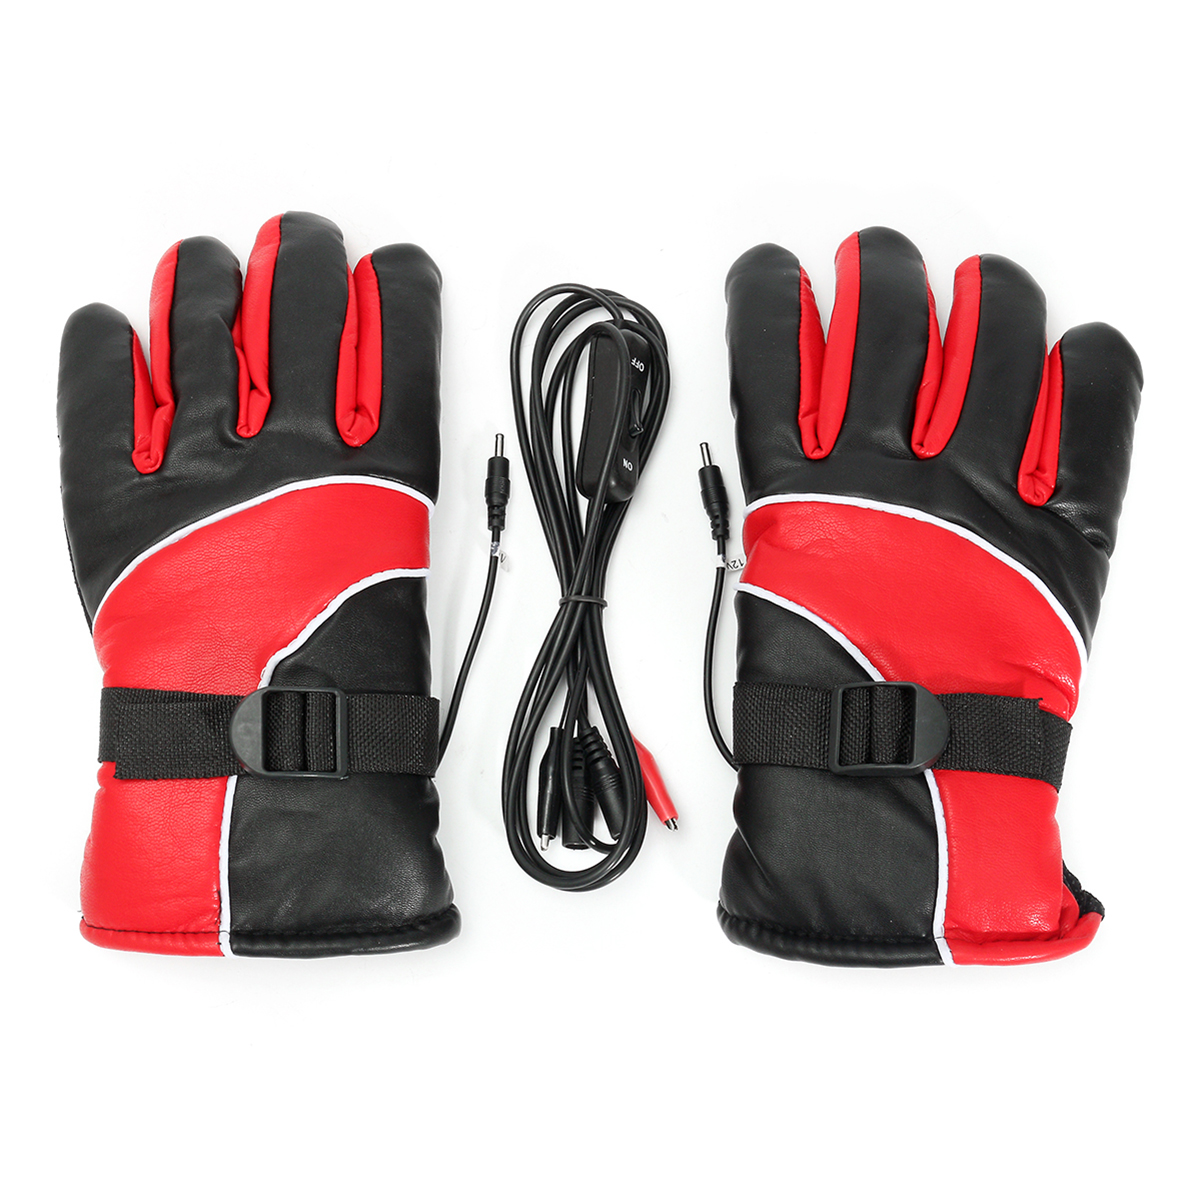 12V Electric Heated Gloves, Winter Rechargeable Warmer Gloves Motorcycle Mittens, Sport Temperature Control Cycle Outdoor Glove